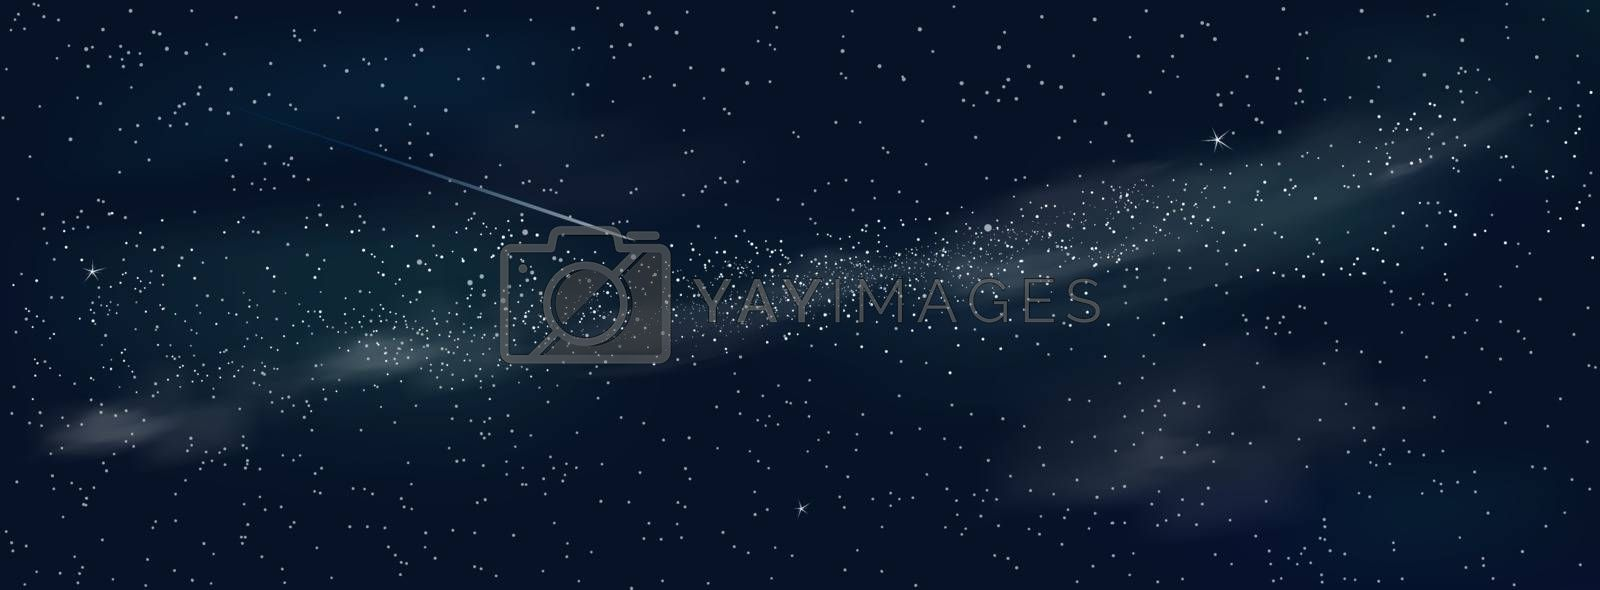 Space background. Shining stars and nebula. Night starry sky.